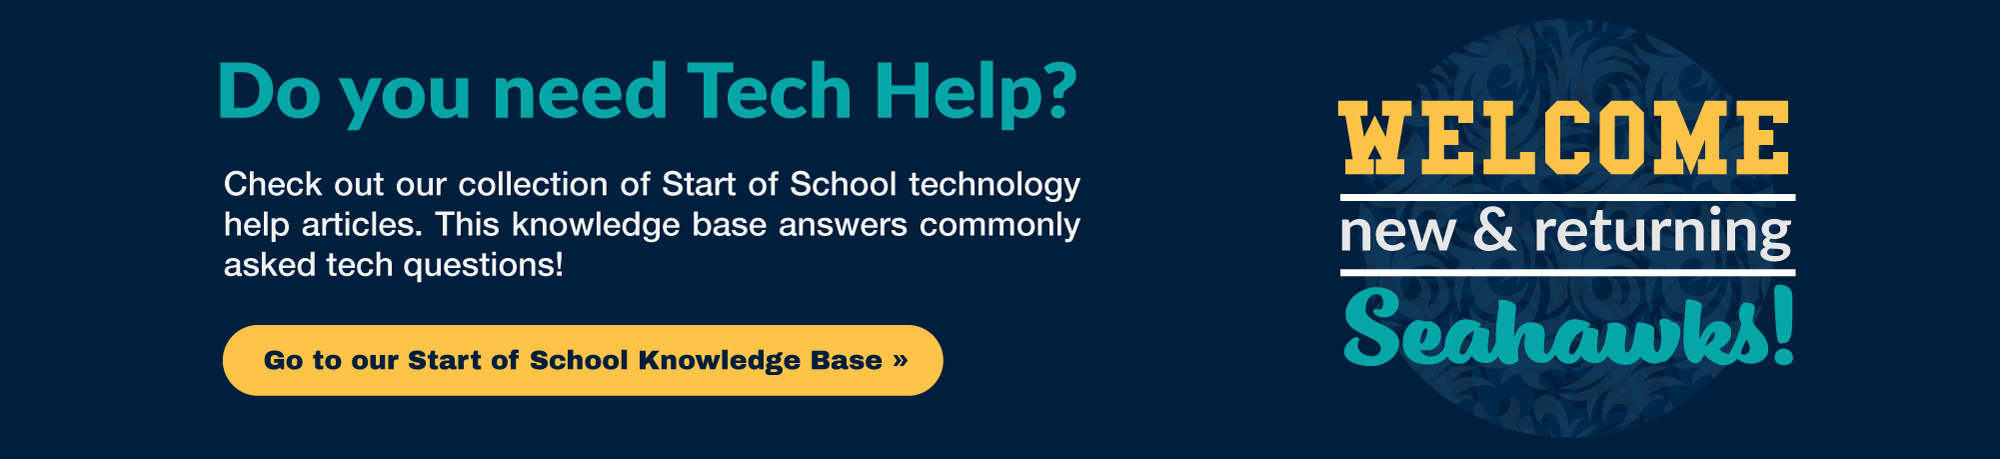 Welcome New & Returning Seahawks! Do you Need Tech Help? Check out our collection of Start of School technology help articles. This knowledge base answers commonly asked tech questions! Go to our Start of School Knowledge Base.